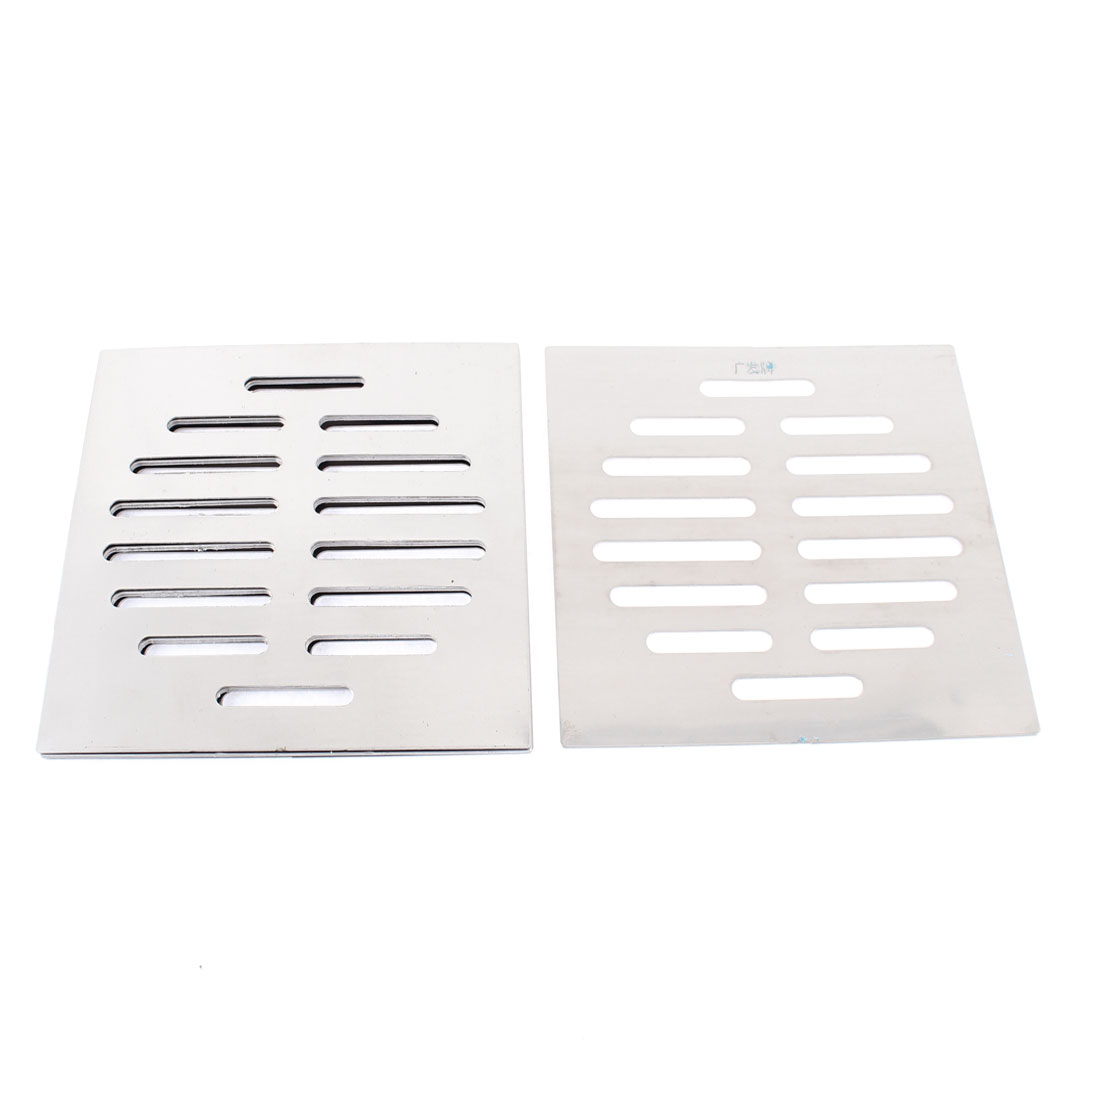 "Stainless Steel Kitchen Bathroom Square Floor Drain Cover 5"" 12.5cm 5pcs"